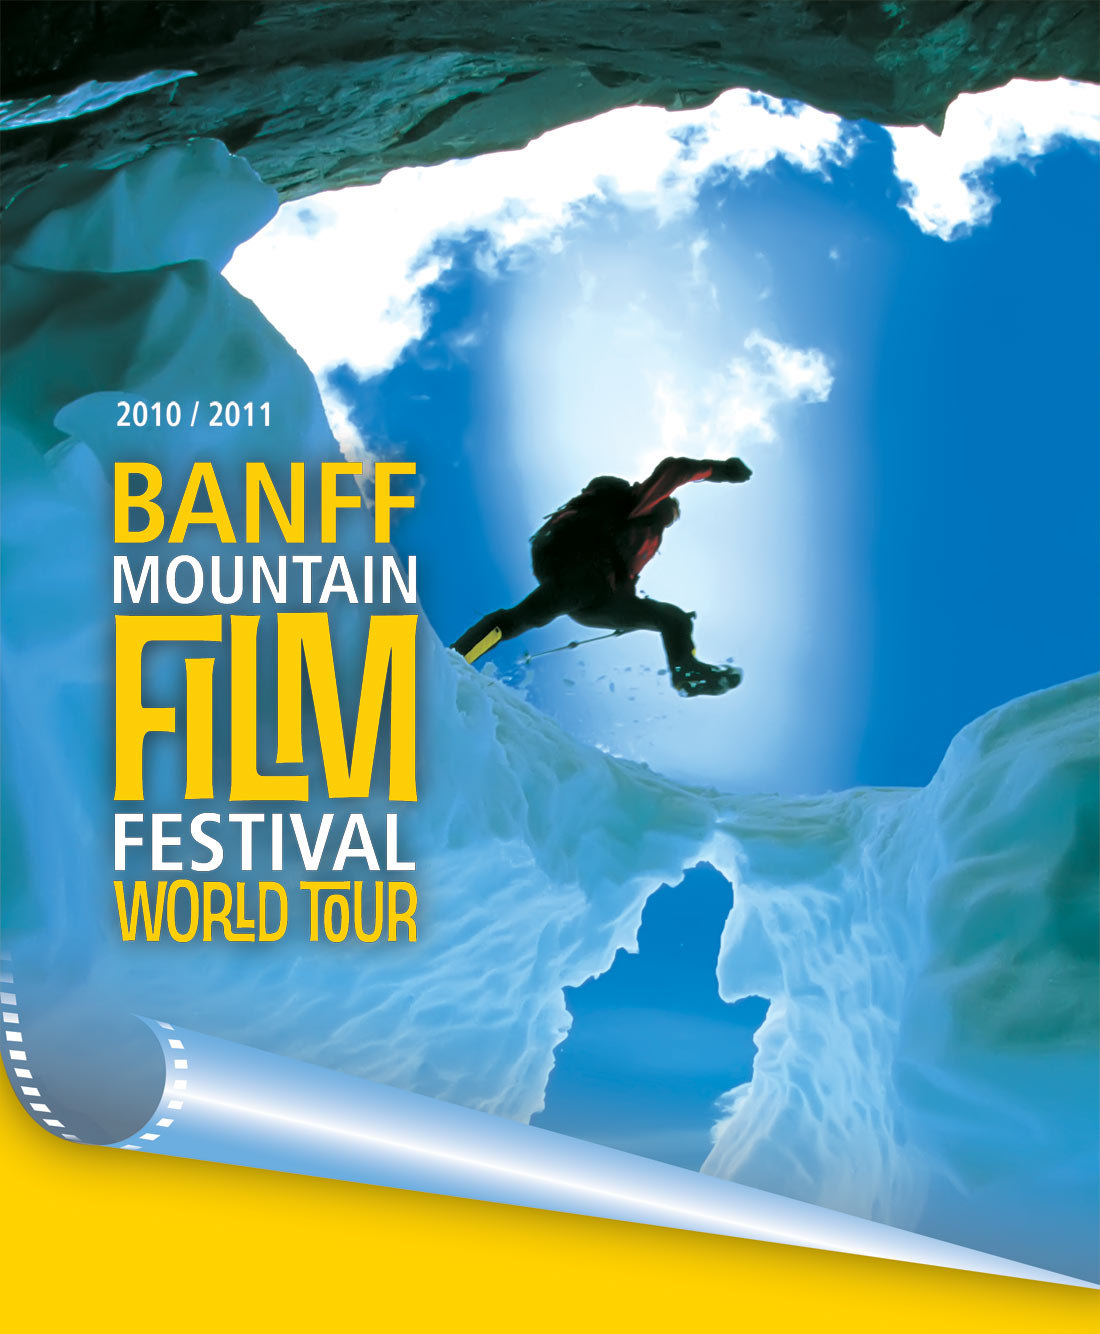 Banff is Back- April 8, 9 &amp; 10